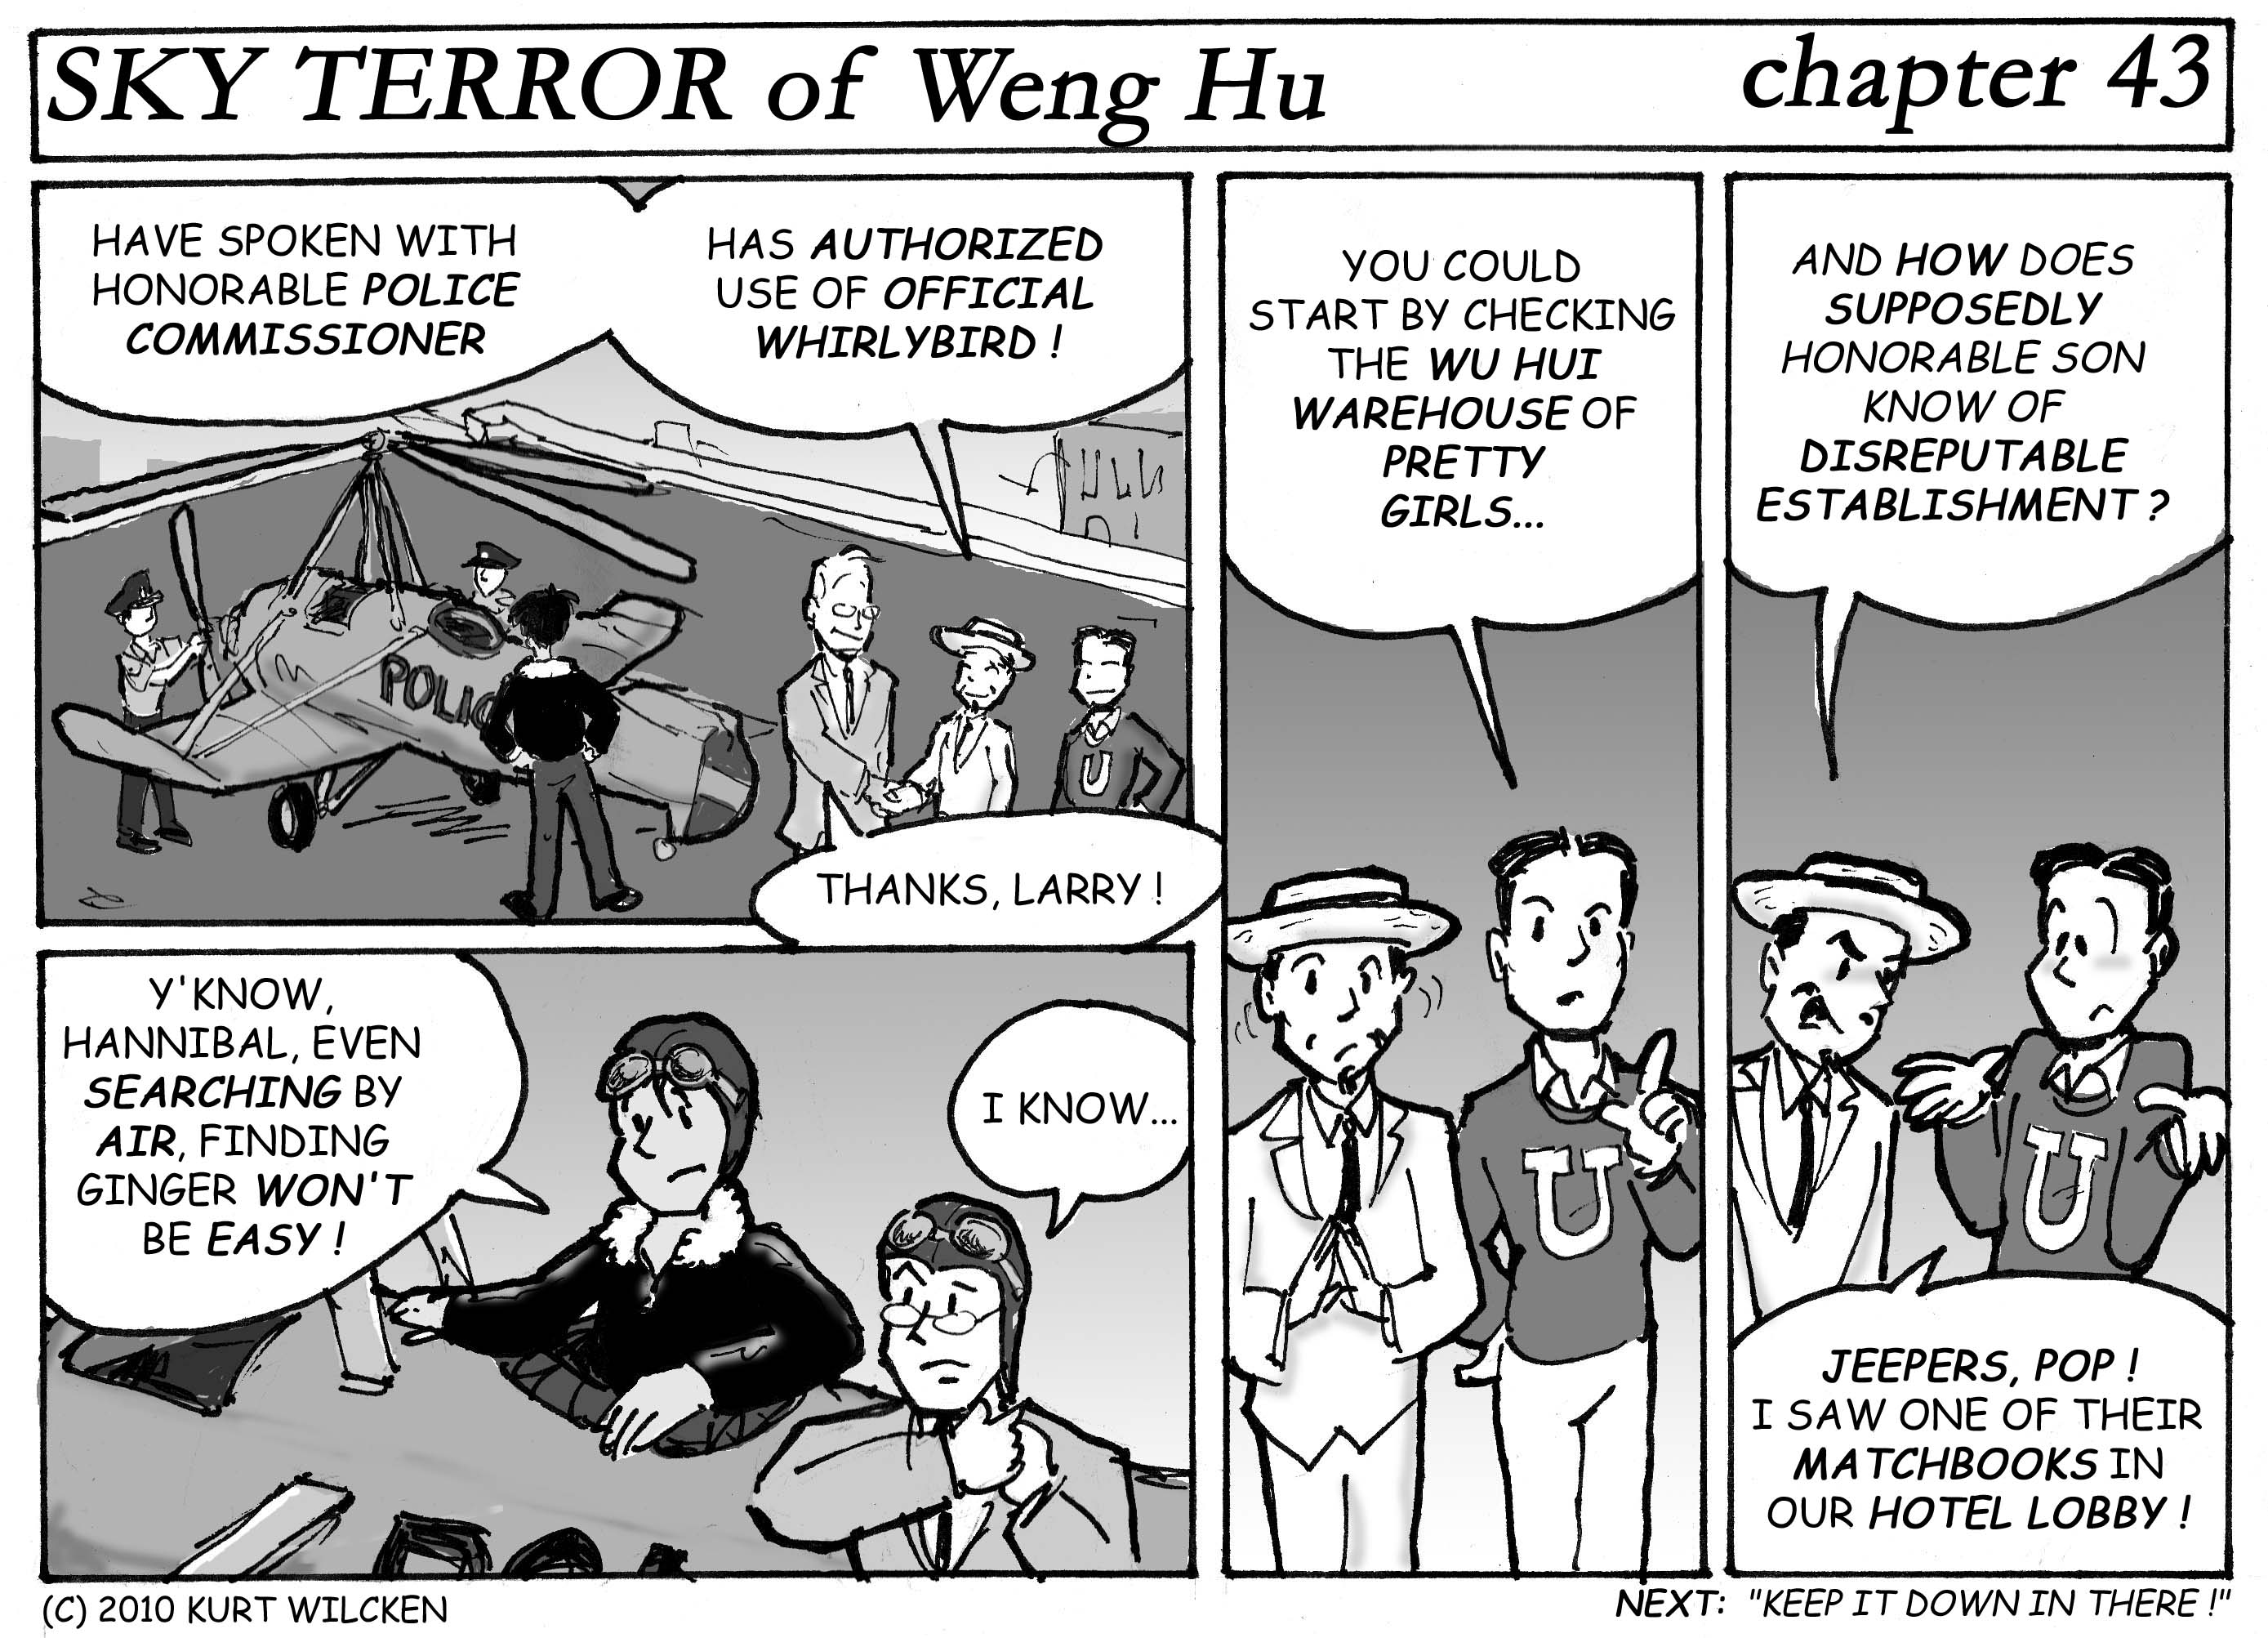 SKY TERROR of Weng Hu:  Chapter 43 — A Good Place to Start